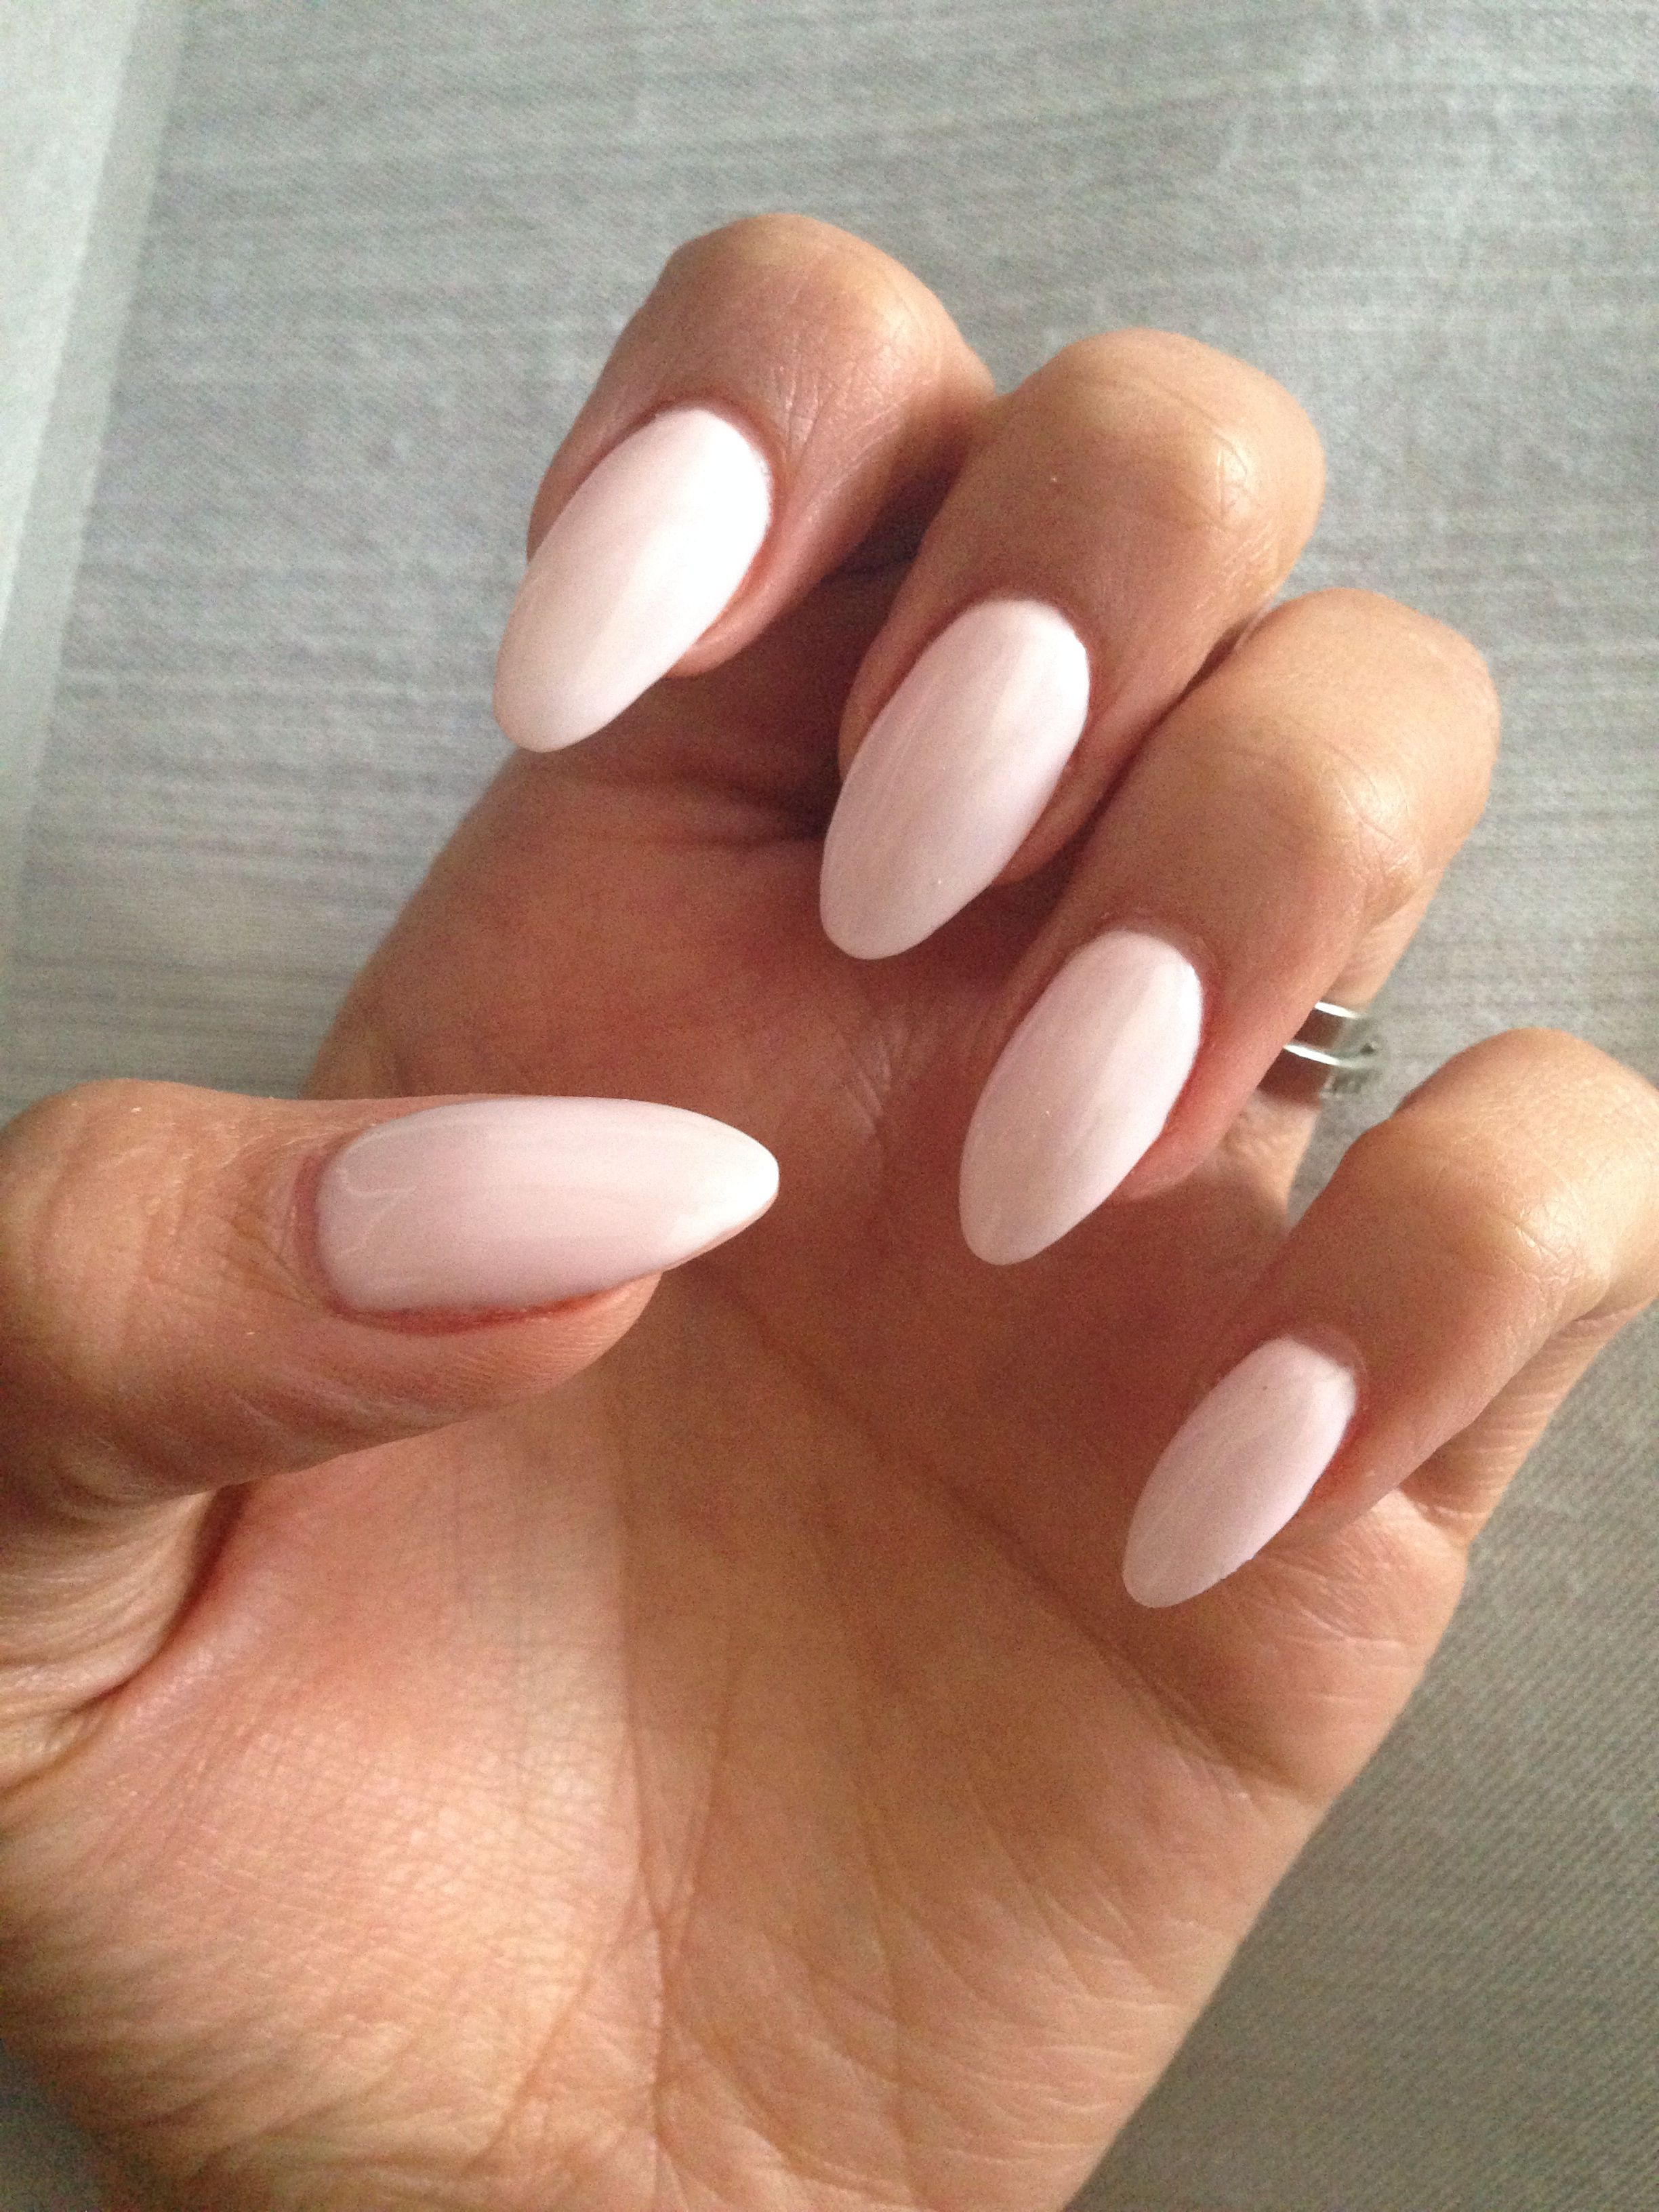 Almond gel nails with baby pink gel polish | Nails | Pinterest ...